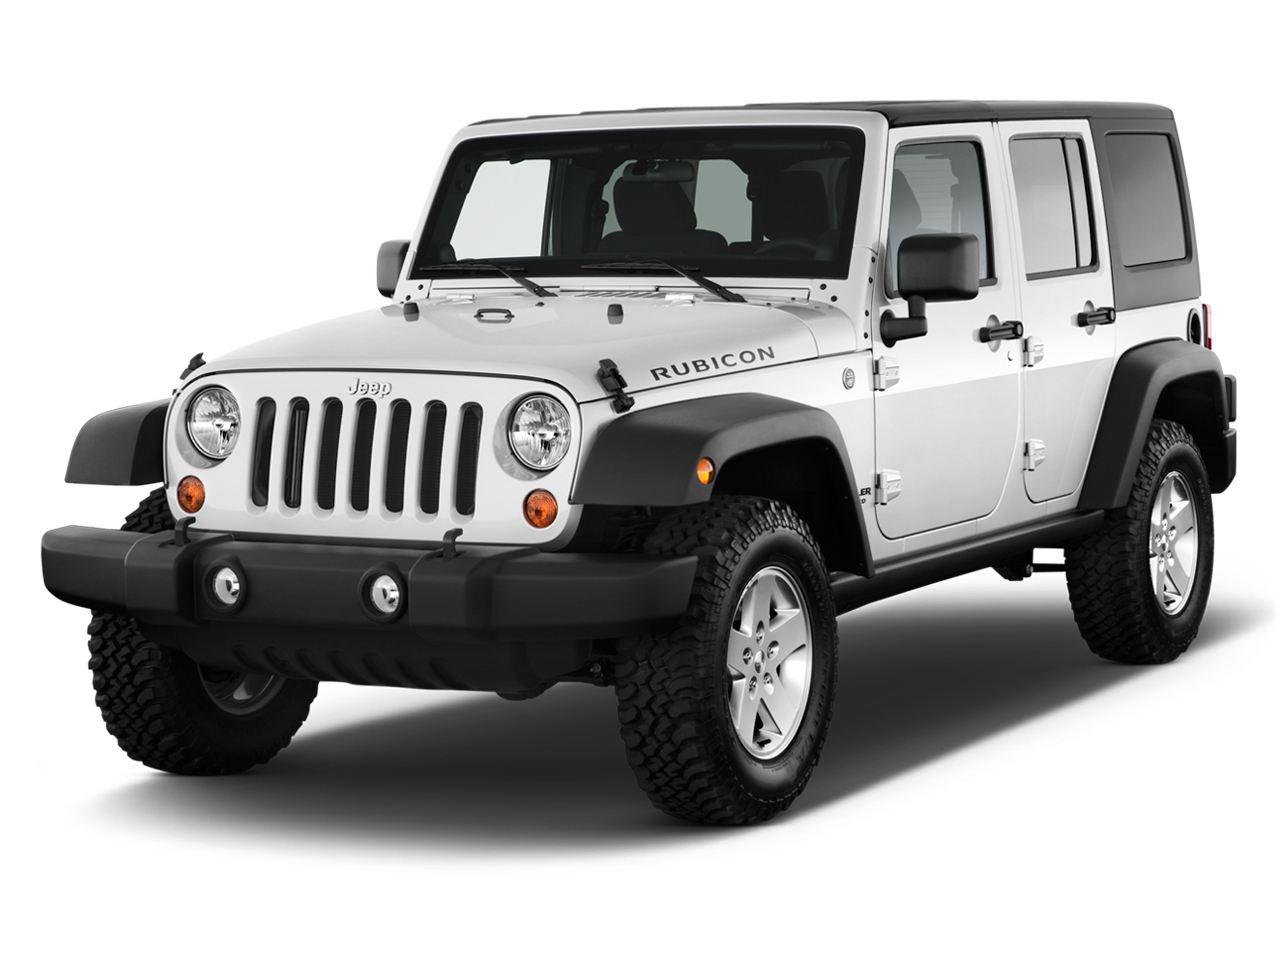 2011 jeep wrangler unlimited review ratings specs prices and photos the car connection. Black Bedroom Furniture Sets. Home Design Ideas